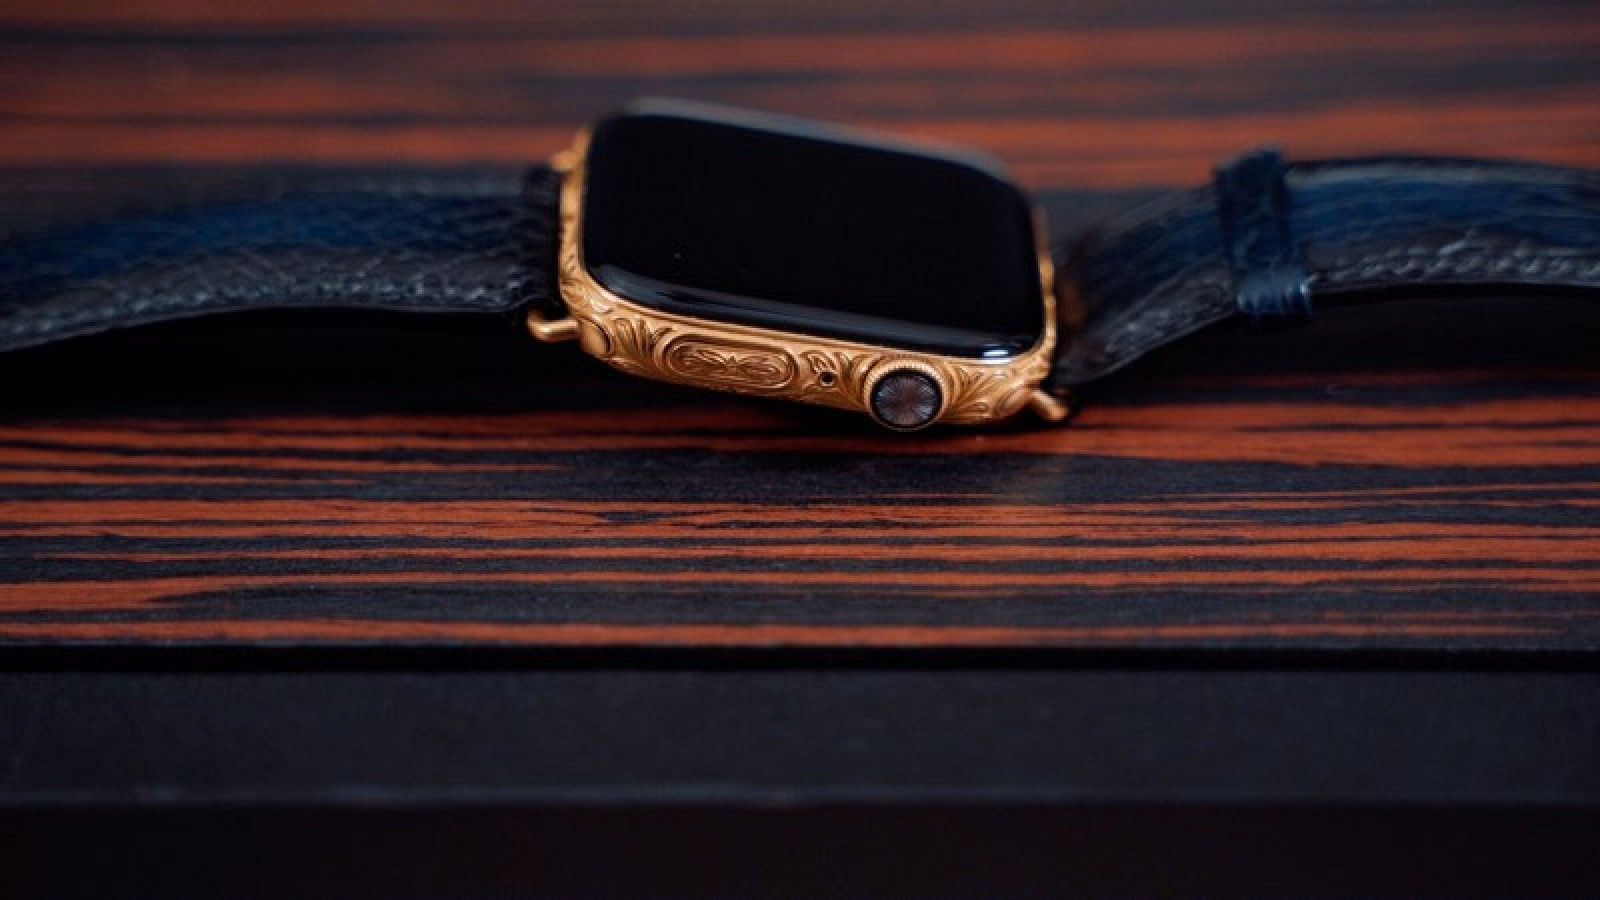 Unduh 7000+ Wallpaper Apple Watch 4  Terbaik